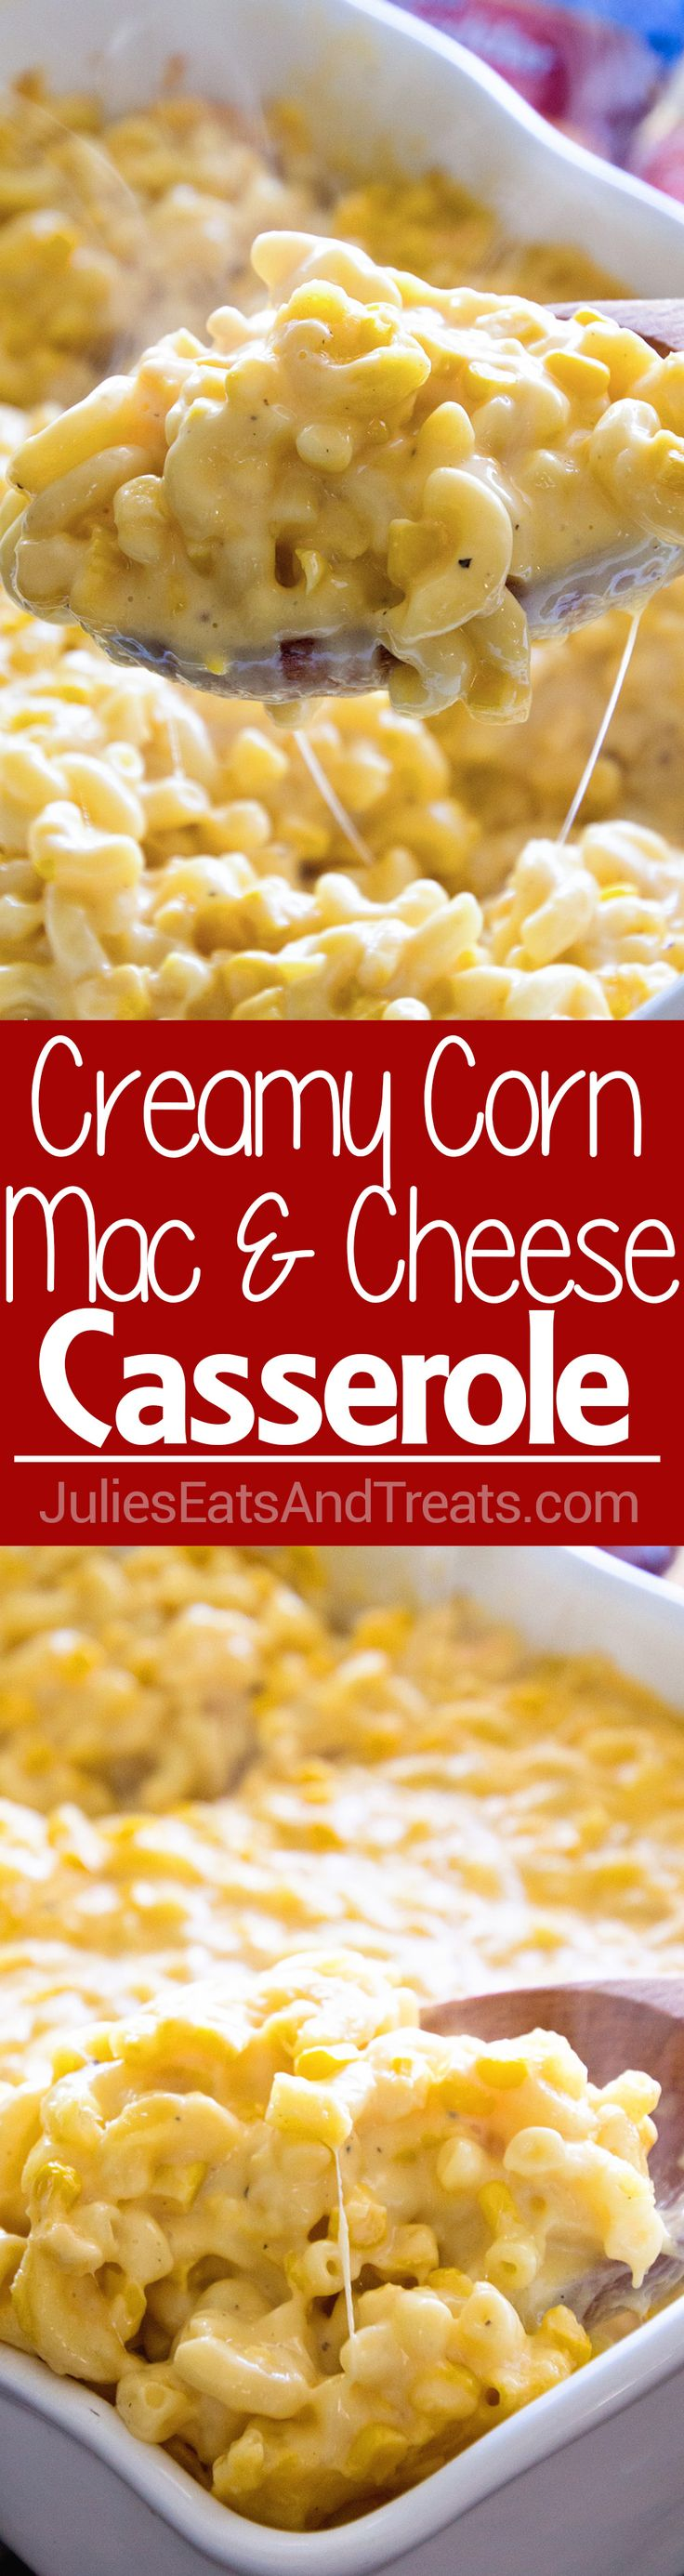 Creamy Corn Macaroni and Cheese Casserole ~ Amazing, Creamy, Cheesy Homemade Macaroni and Cheese with Corn! The Perfect Side Dish for Your Holiday Meals!